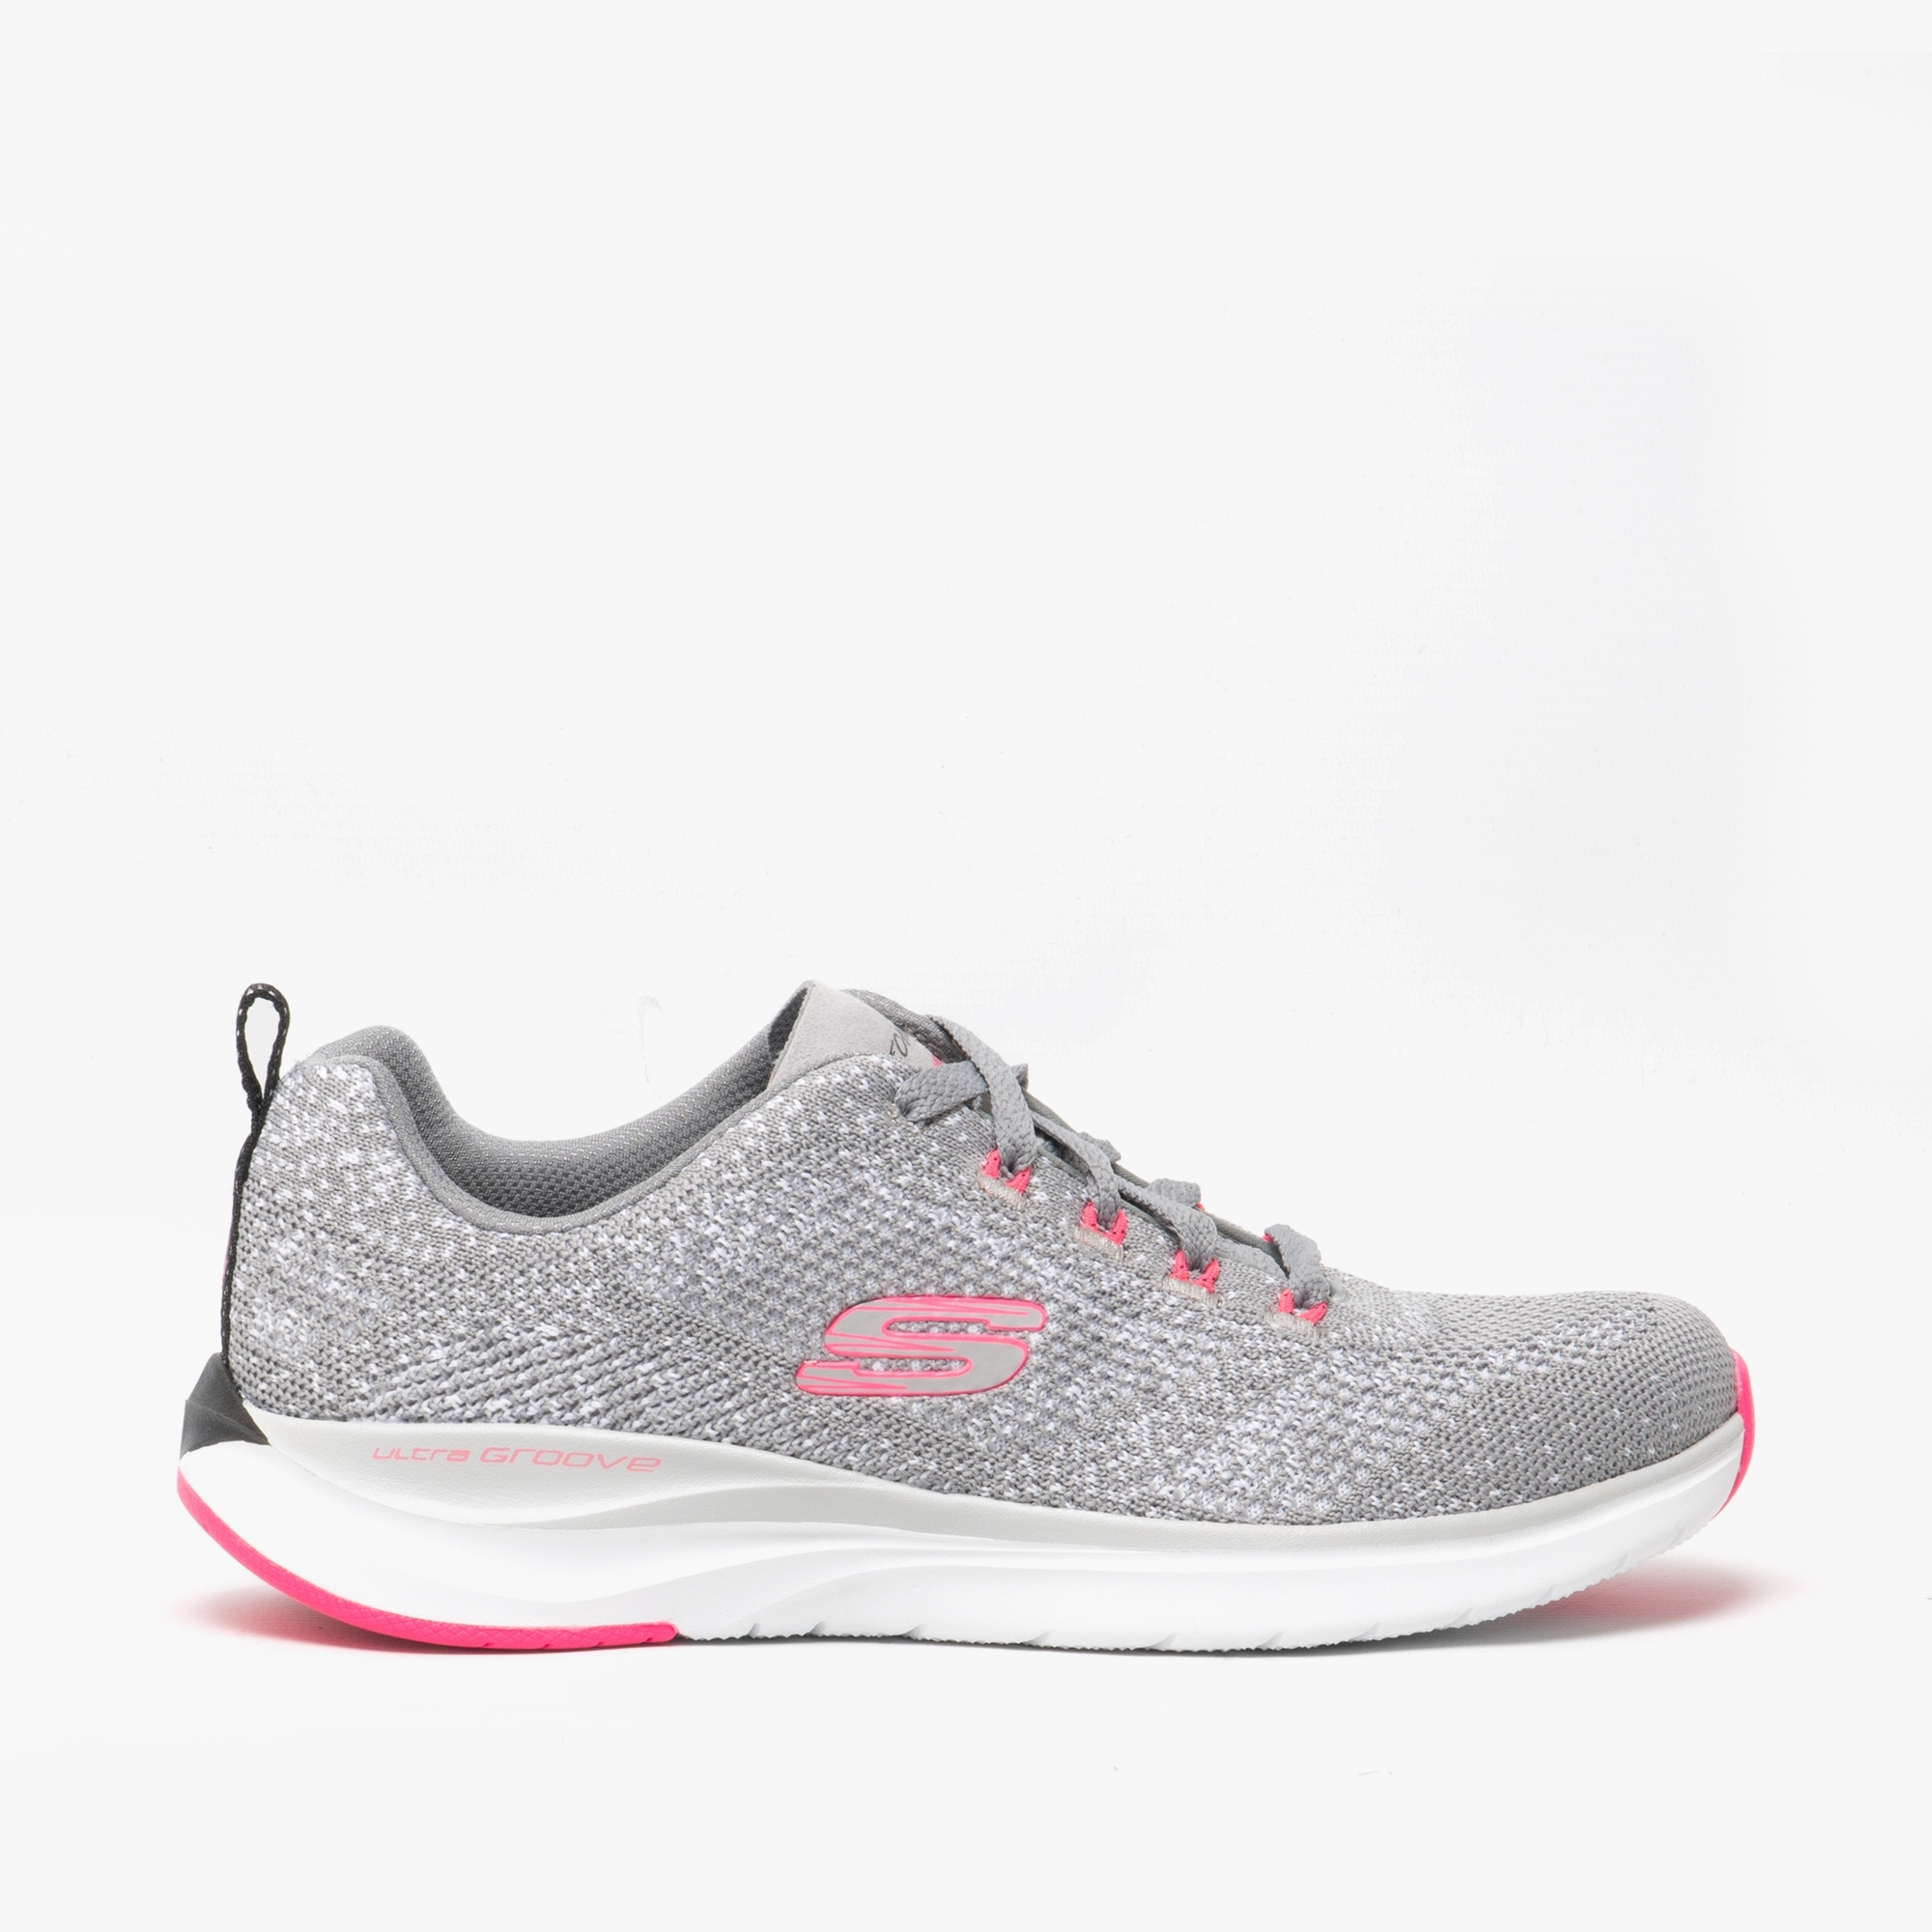 skechers grey and pink trainers